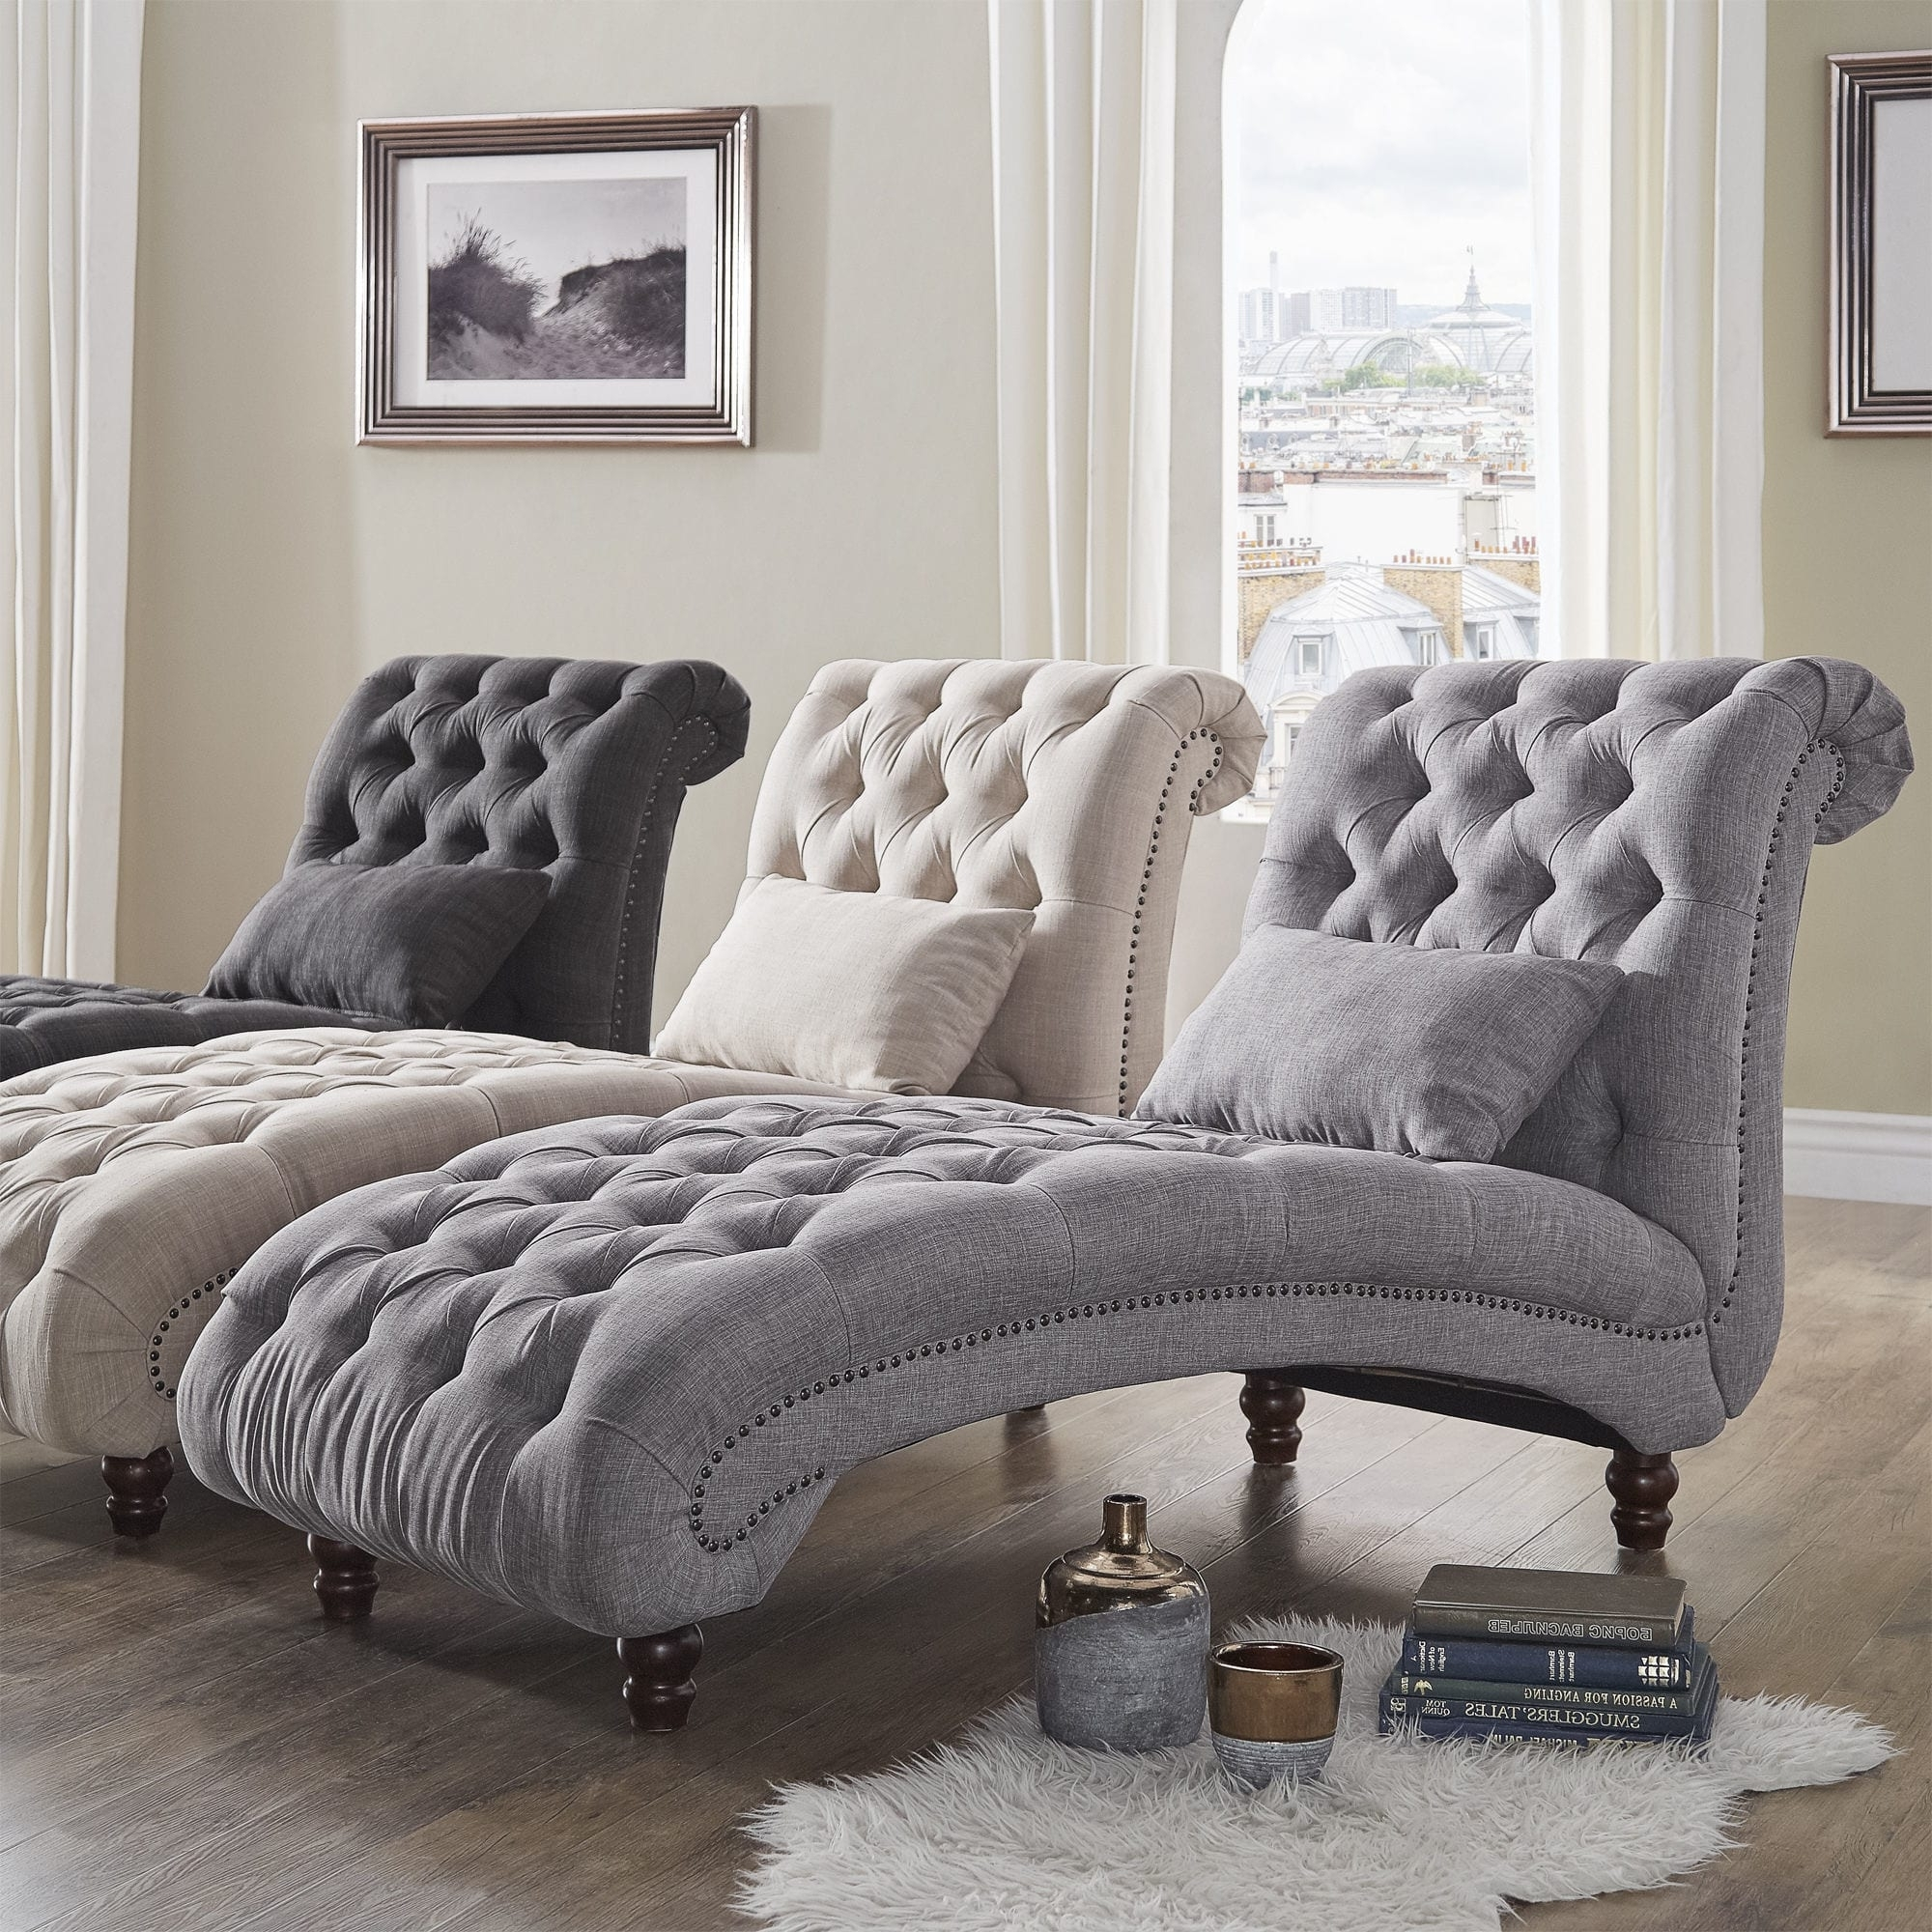 Recent Oversized Chaise Lounges Pertaining To Knightsbridge Tufted Oversized Chaise Loungeinspire Q Artisan (View 14 of 15)